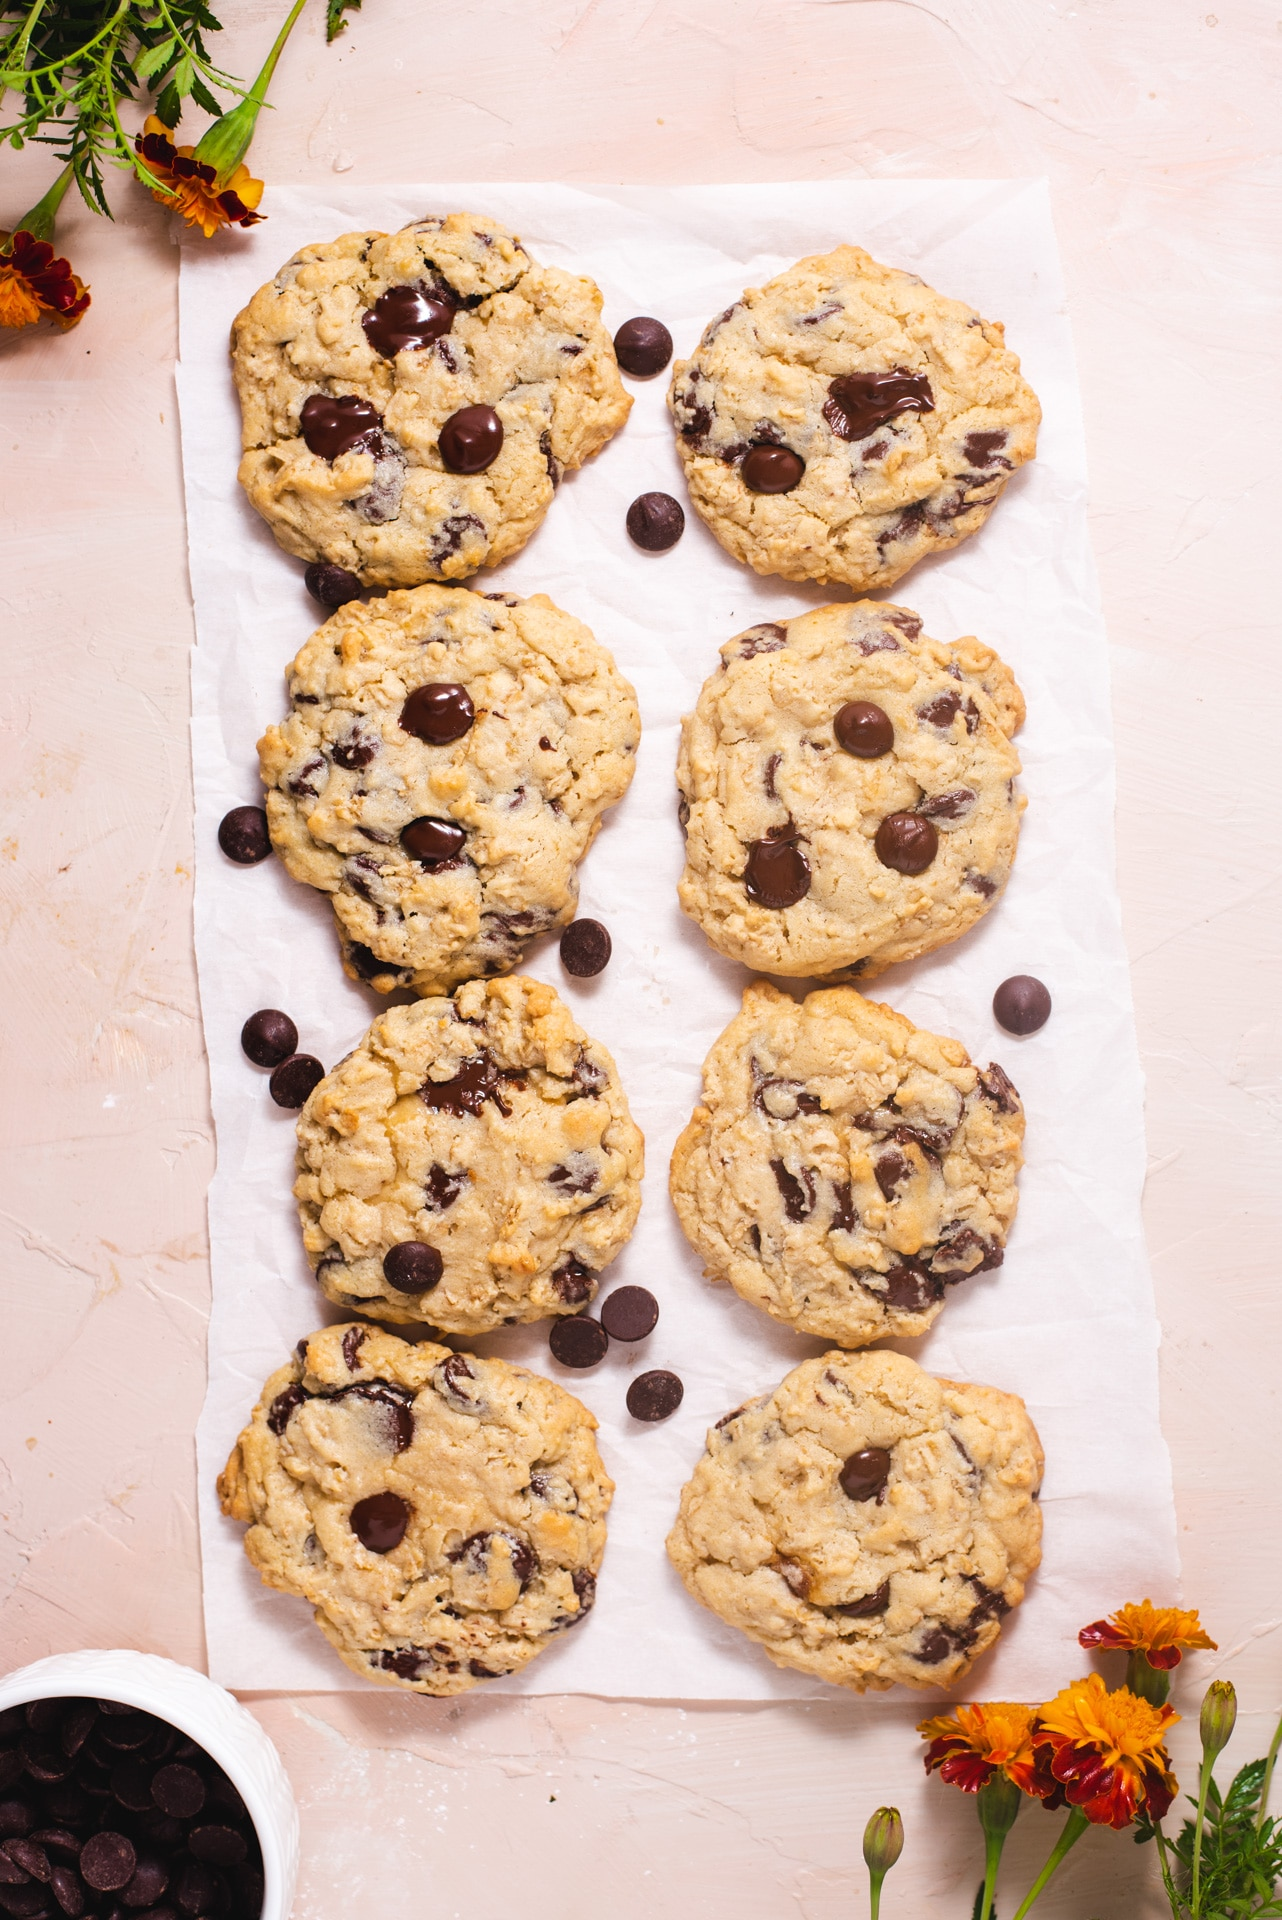 Overhead view of eight cookies on a piece of white parchment paper